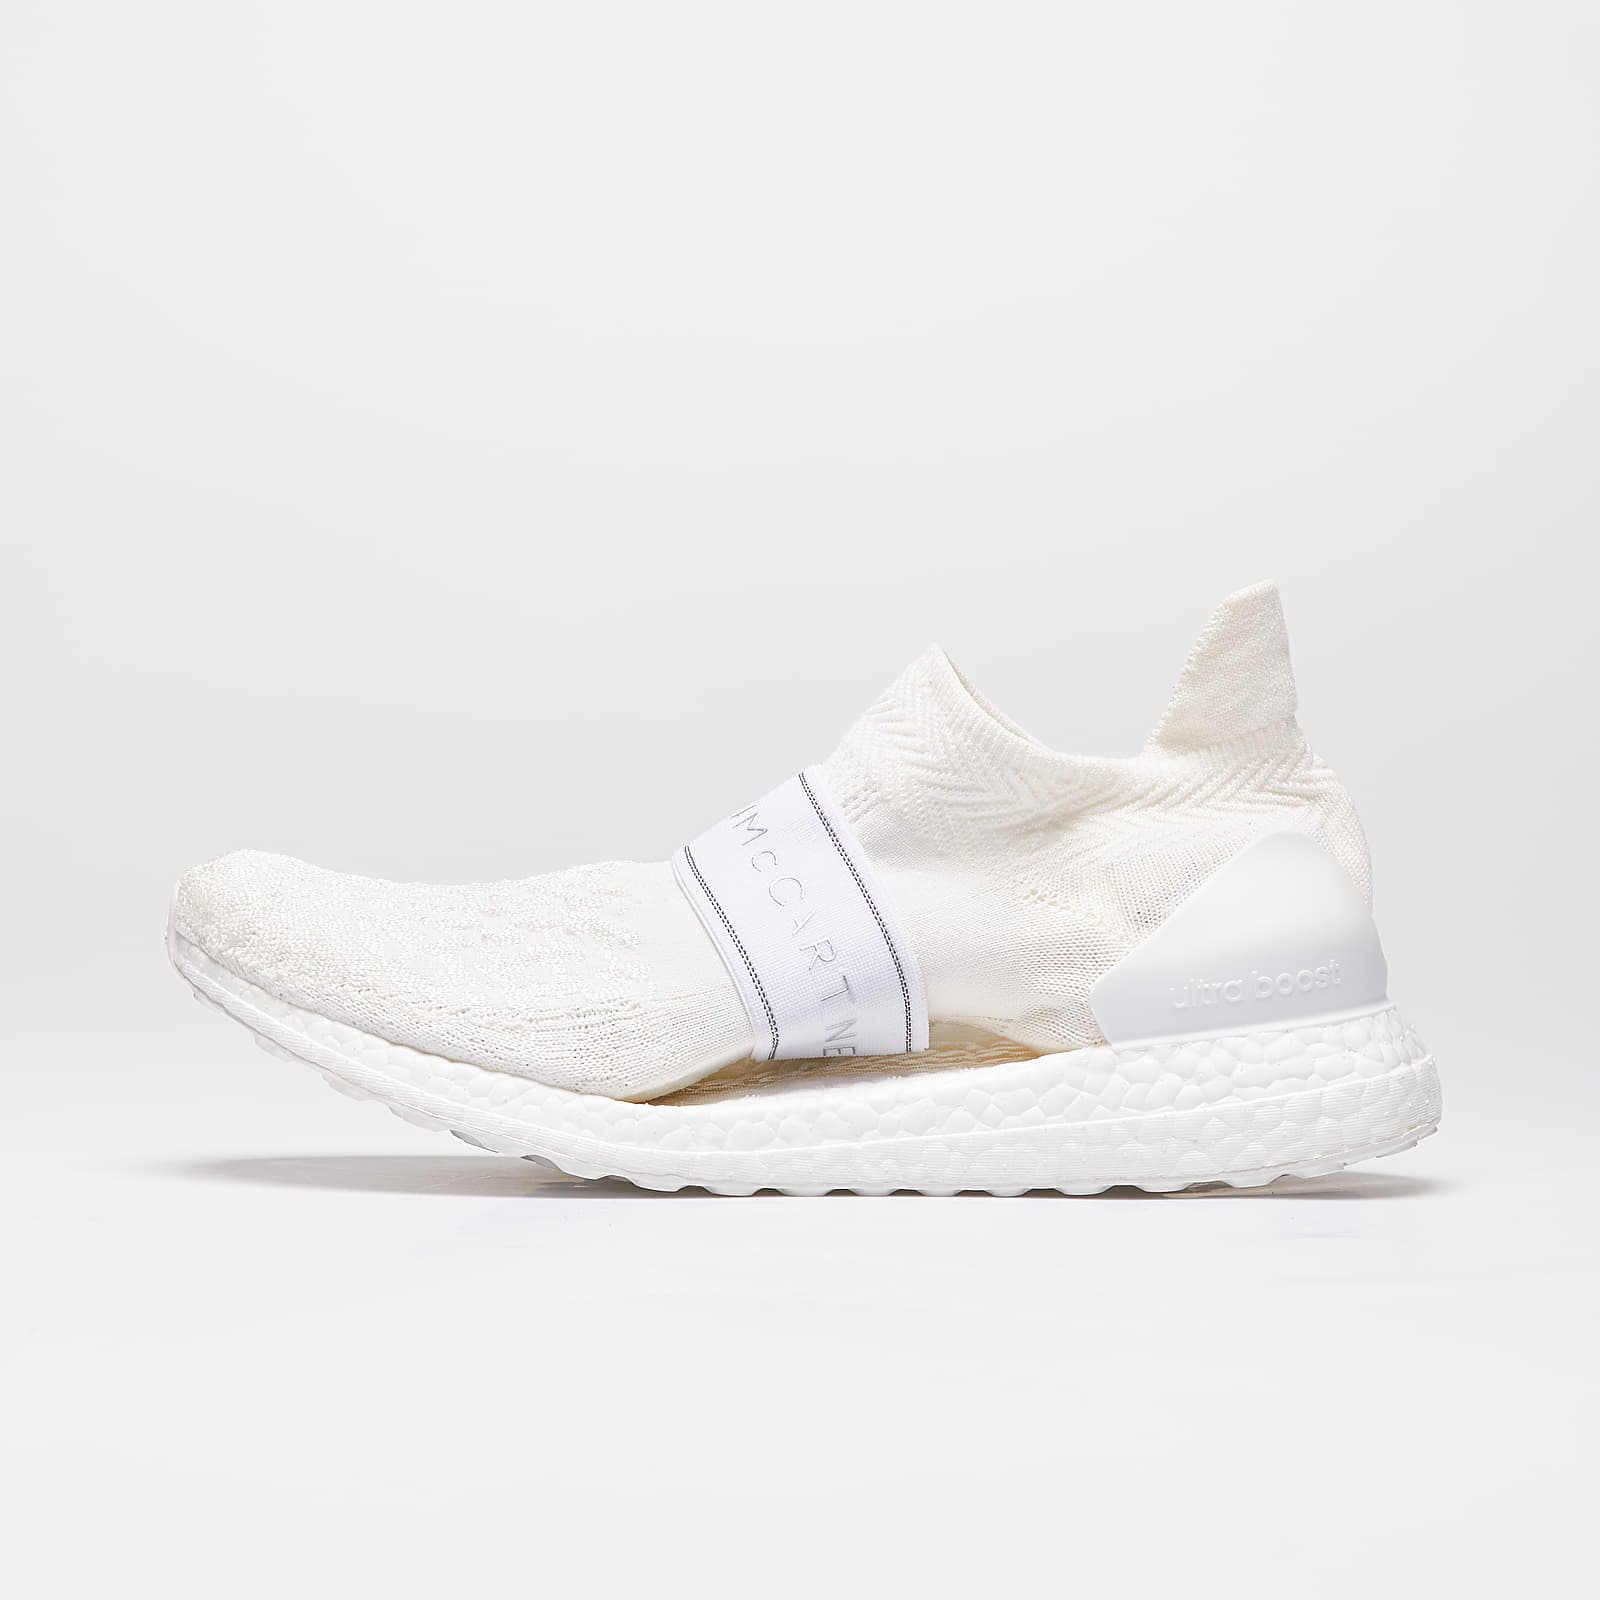 adidas x Stella McCartney UltraBOOST X 3.D. Knit